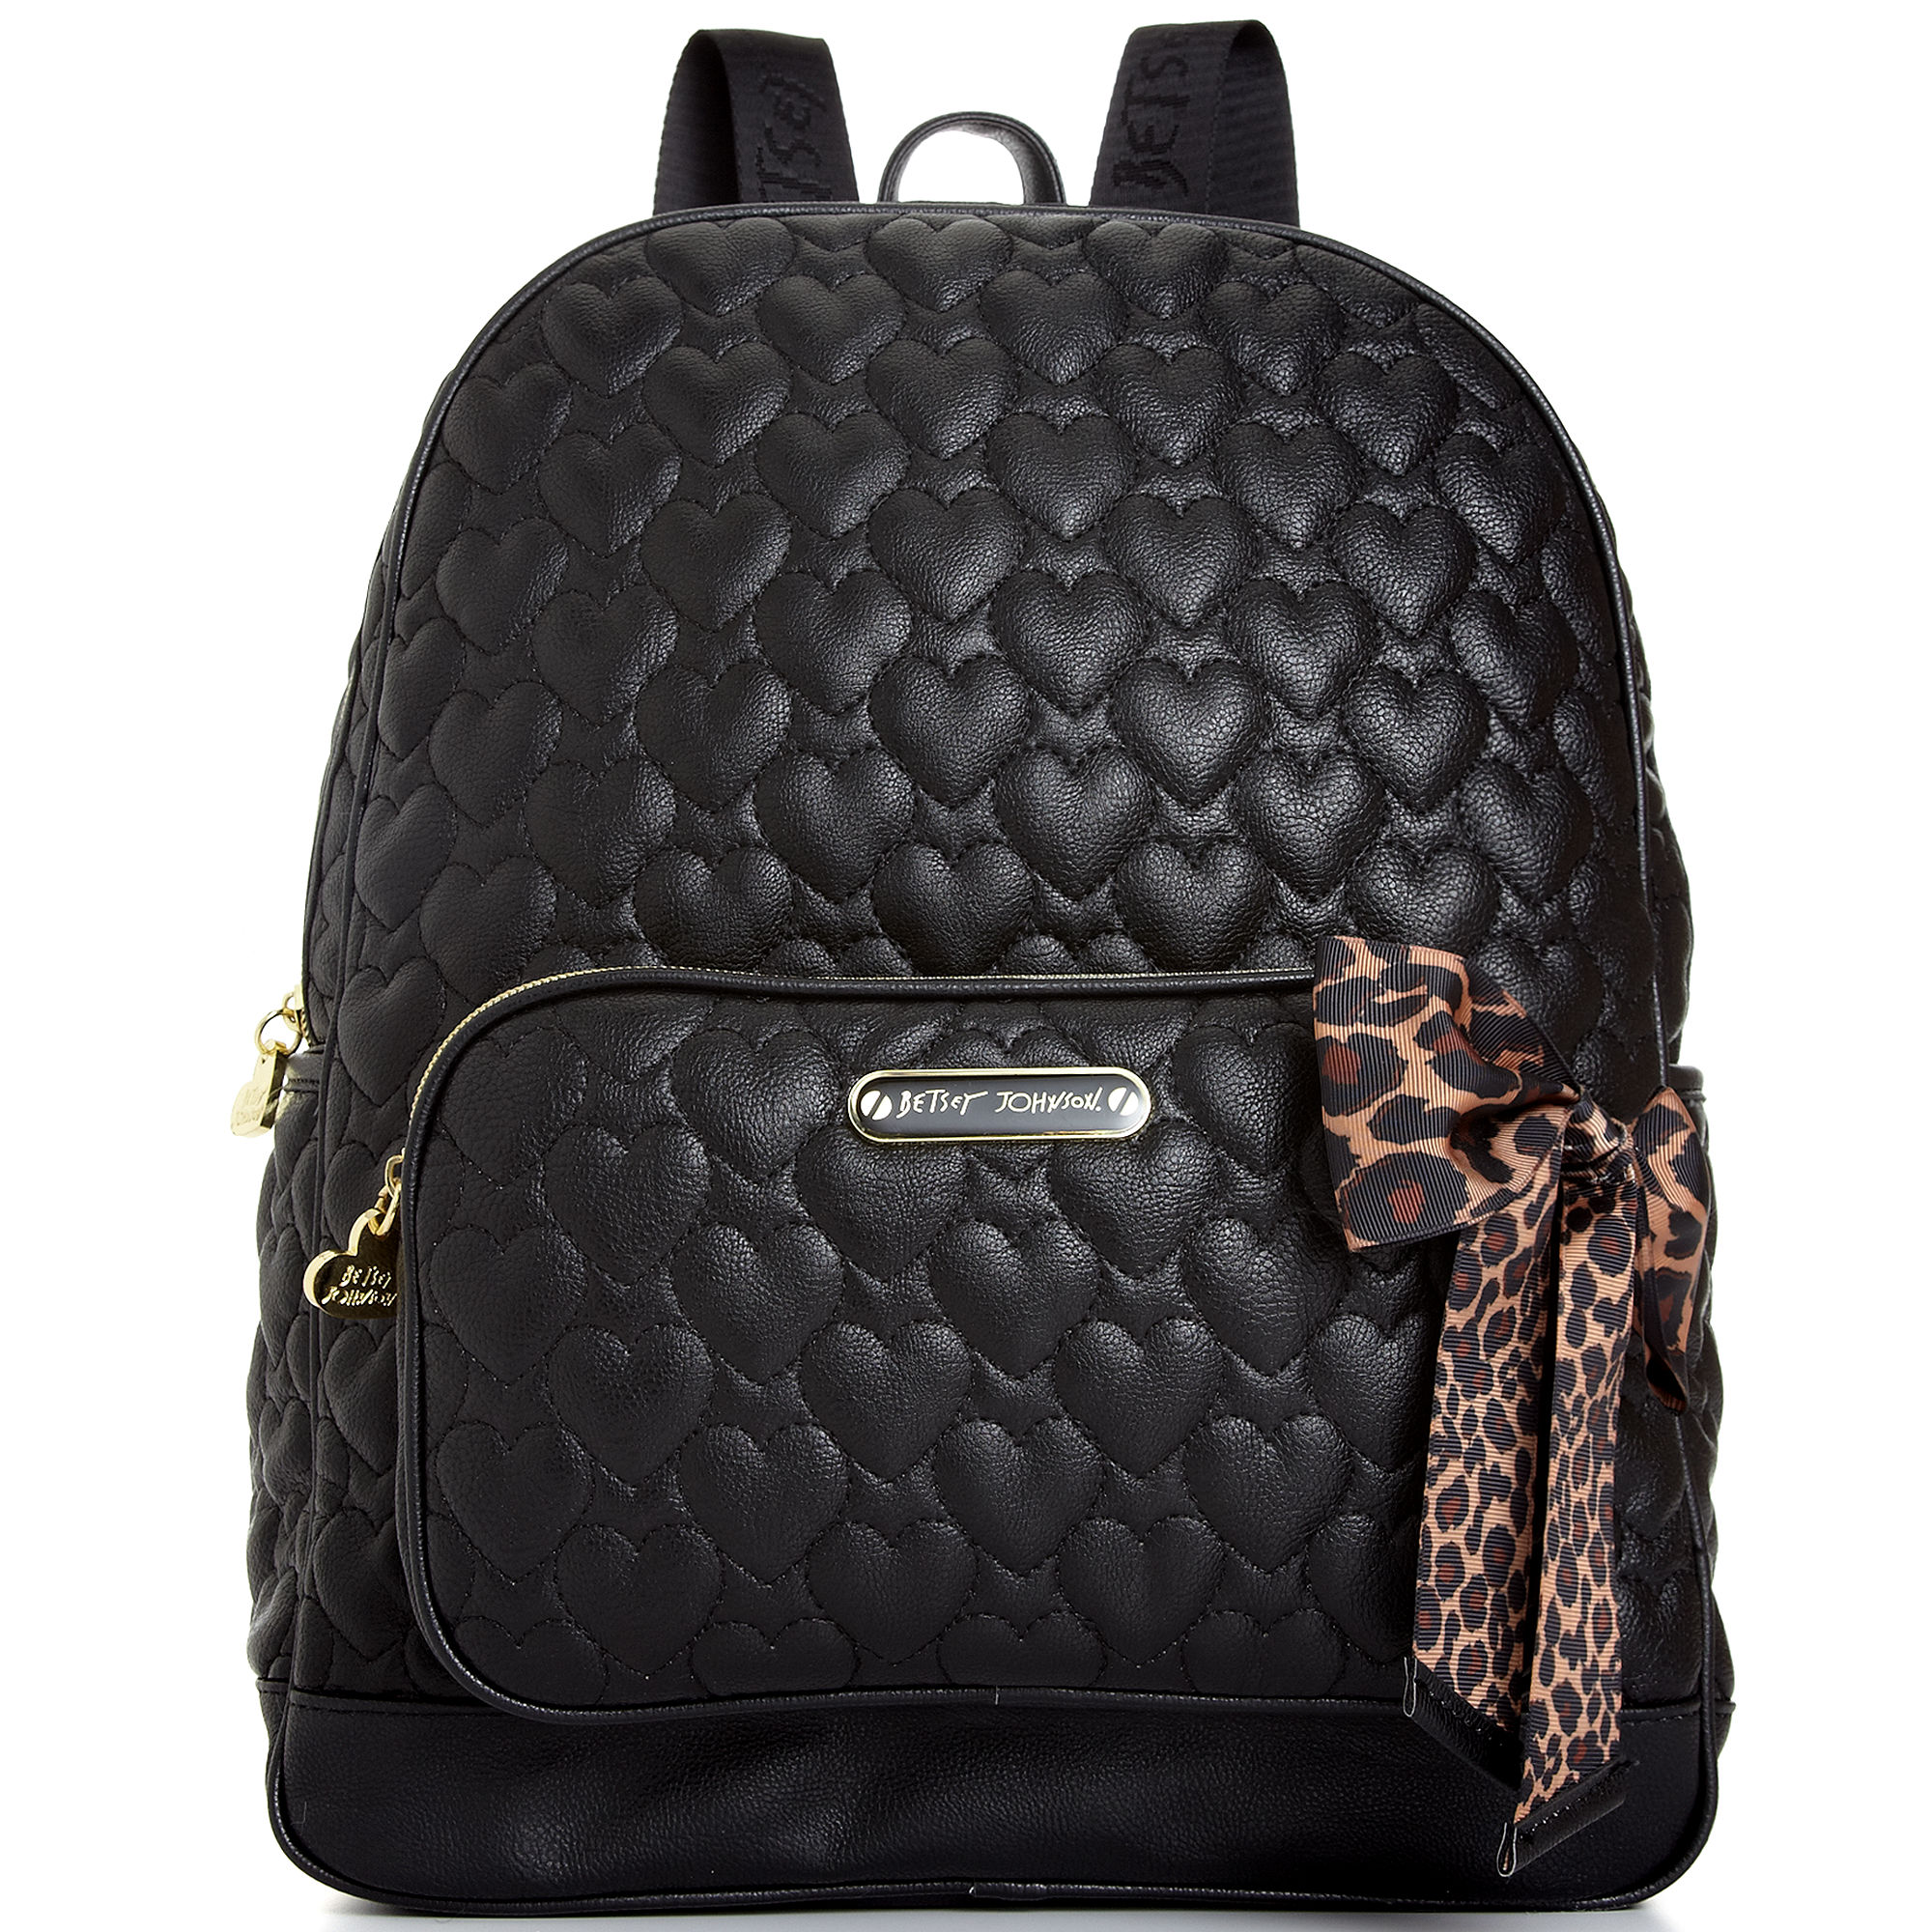 Betsey Johnson Quilted Backpack In Black Lyst